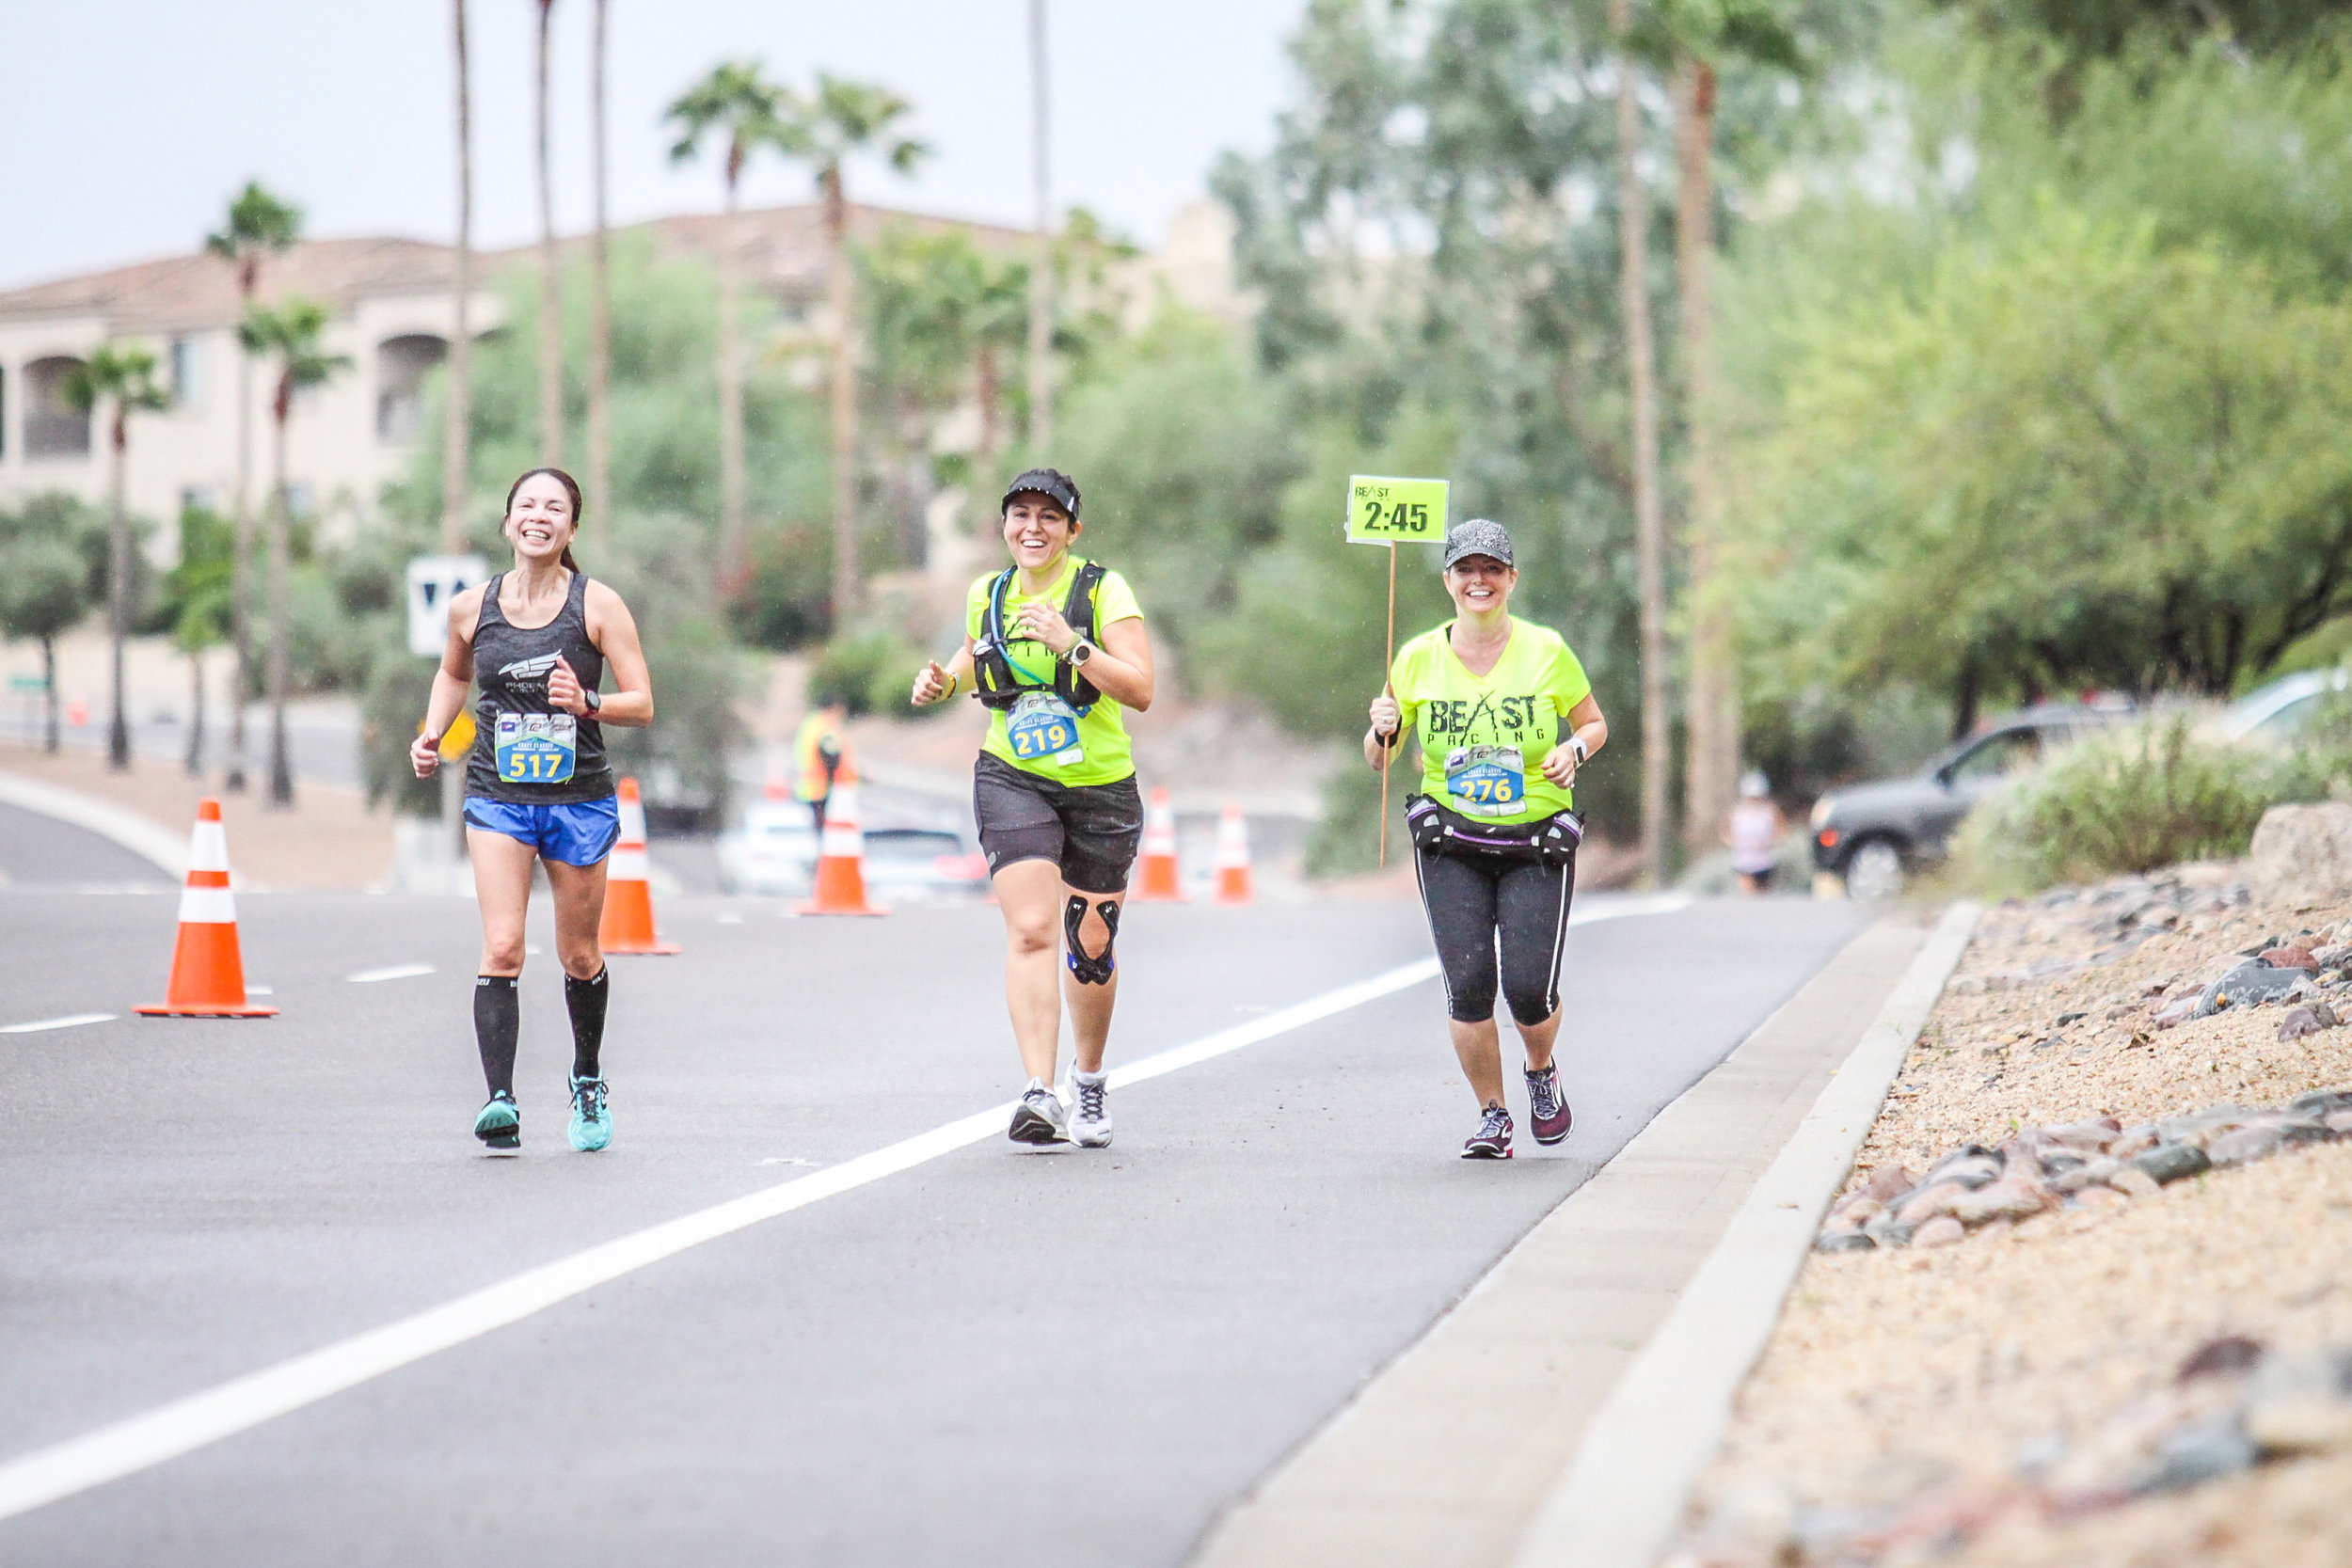 Around mile 11 of the October 13, 2018  Craft Classic Phoenix Half Marathon  where my  Beast Pacing  teammate and I paced the 2:45 group.